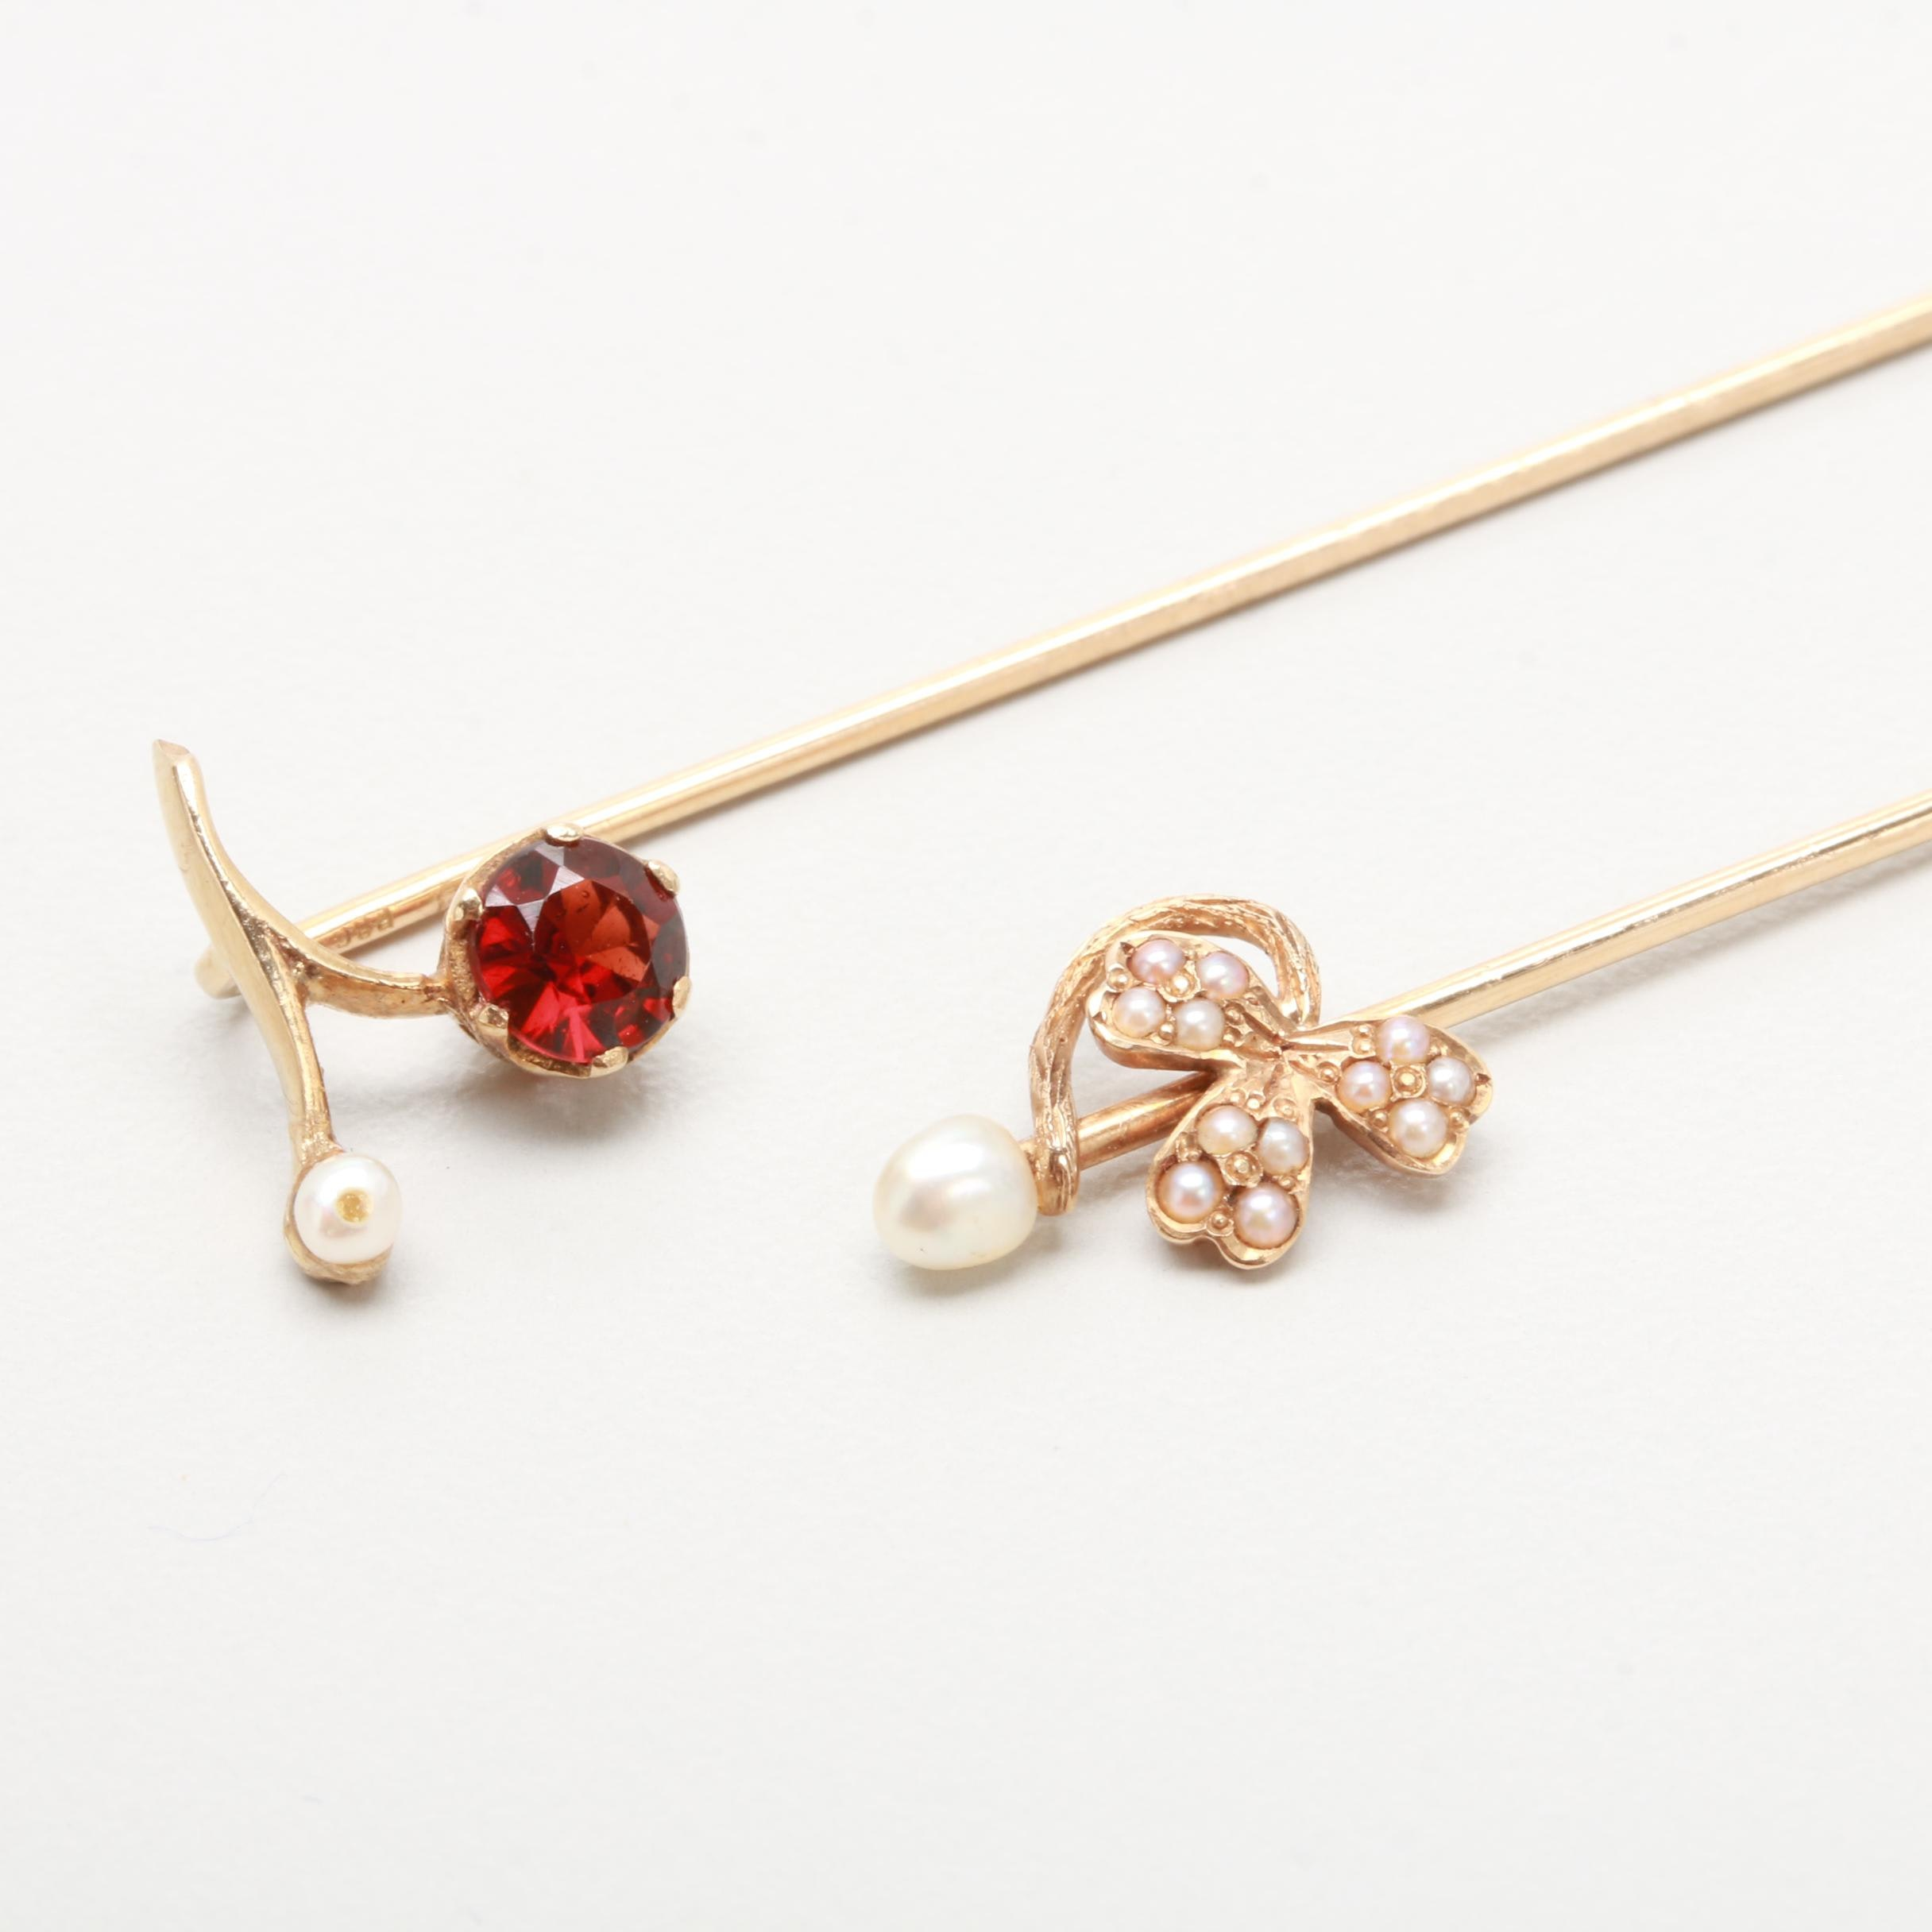 Antique 14K and 10K Yellow Gold Garnet, Cultured Pearl & Seed Pearl Stick Pins